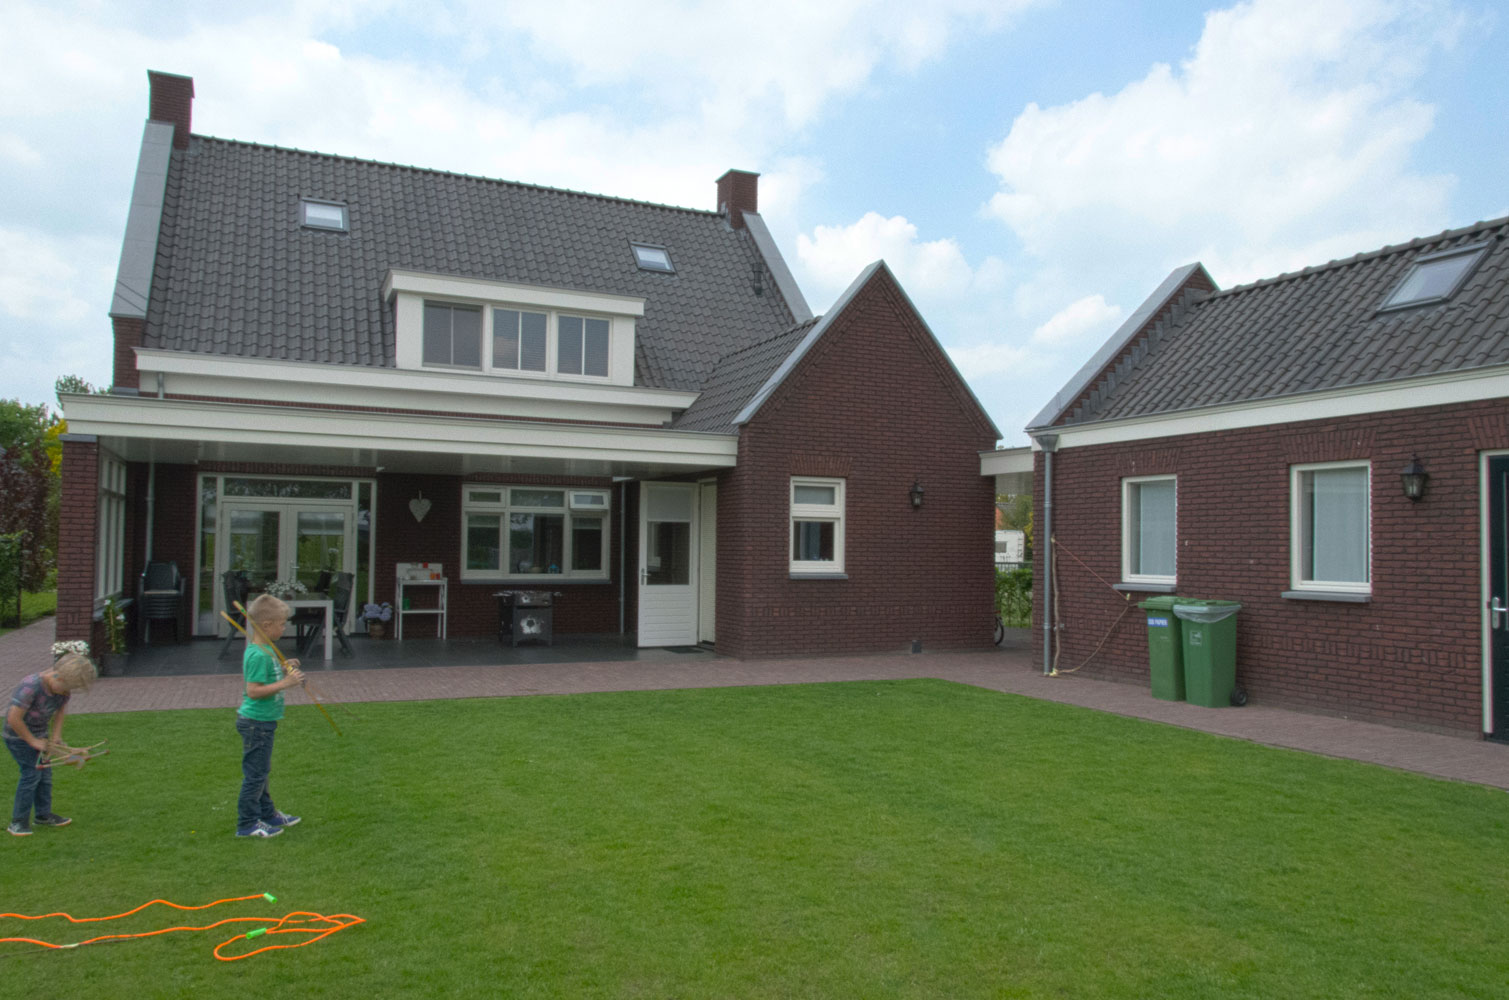 04110ext4  Woning Lage Mierde